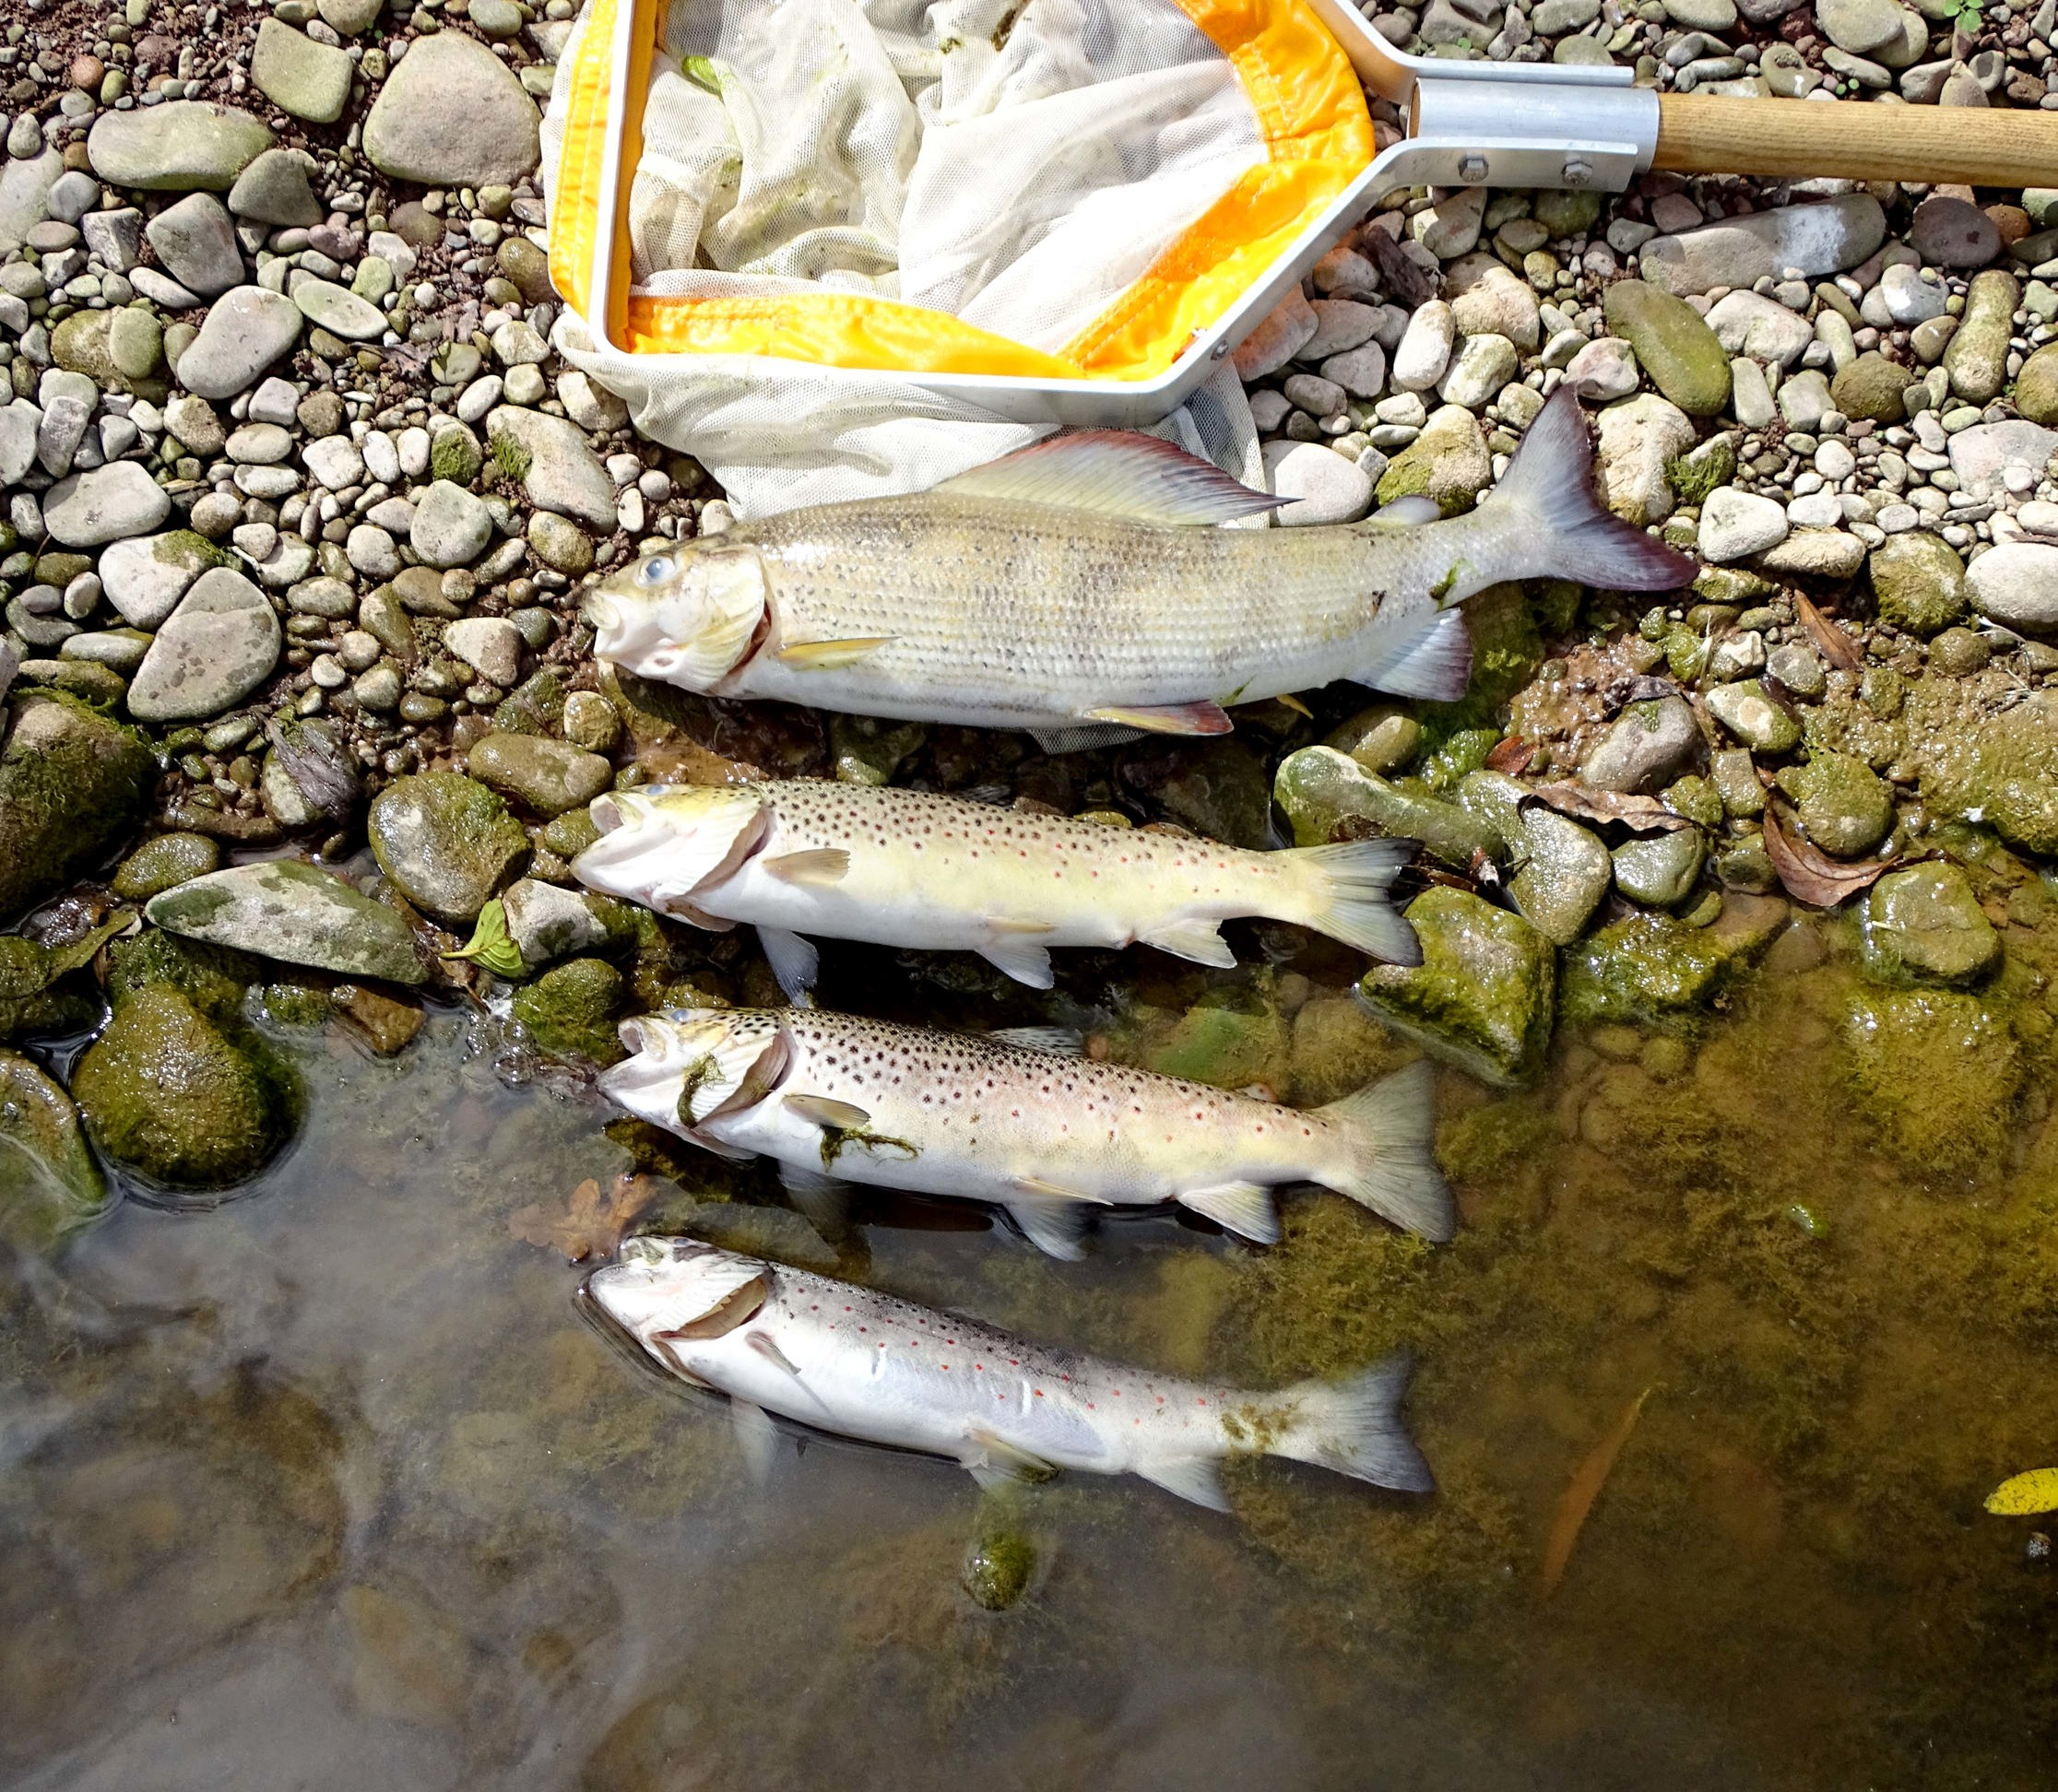 Some of the dead trout and grayling from the Llynfi on Saturday.